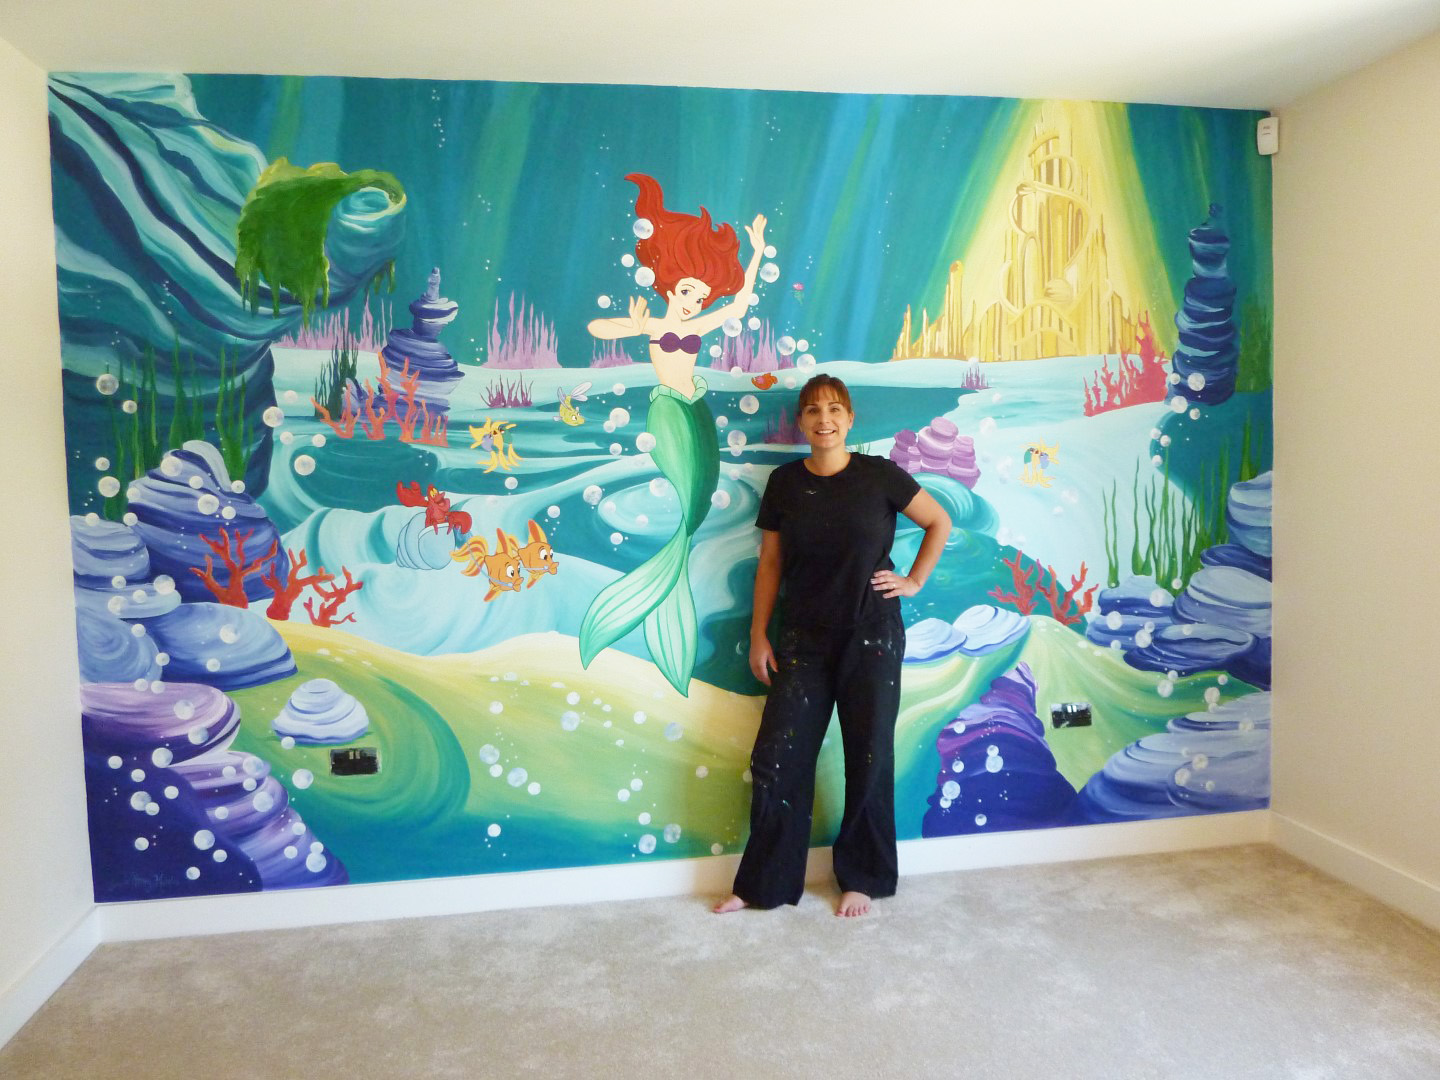 how to paint a mural on a wall